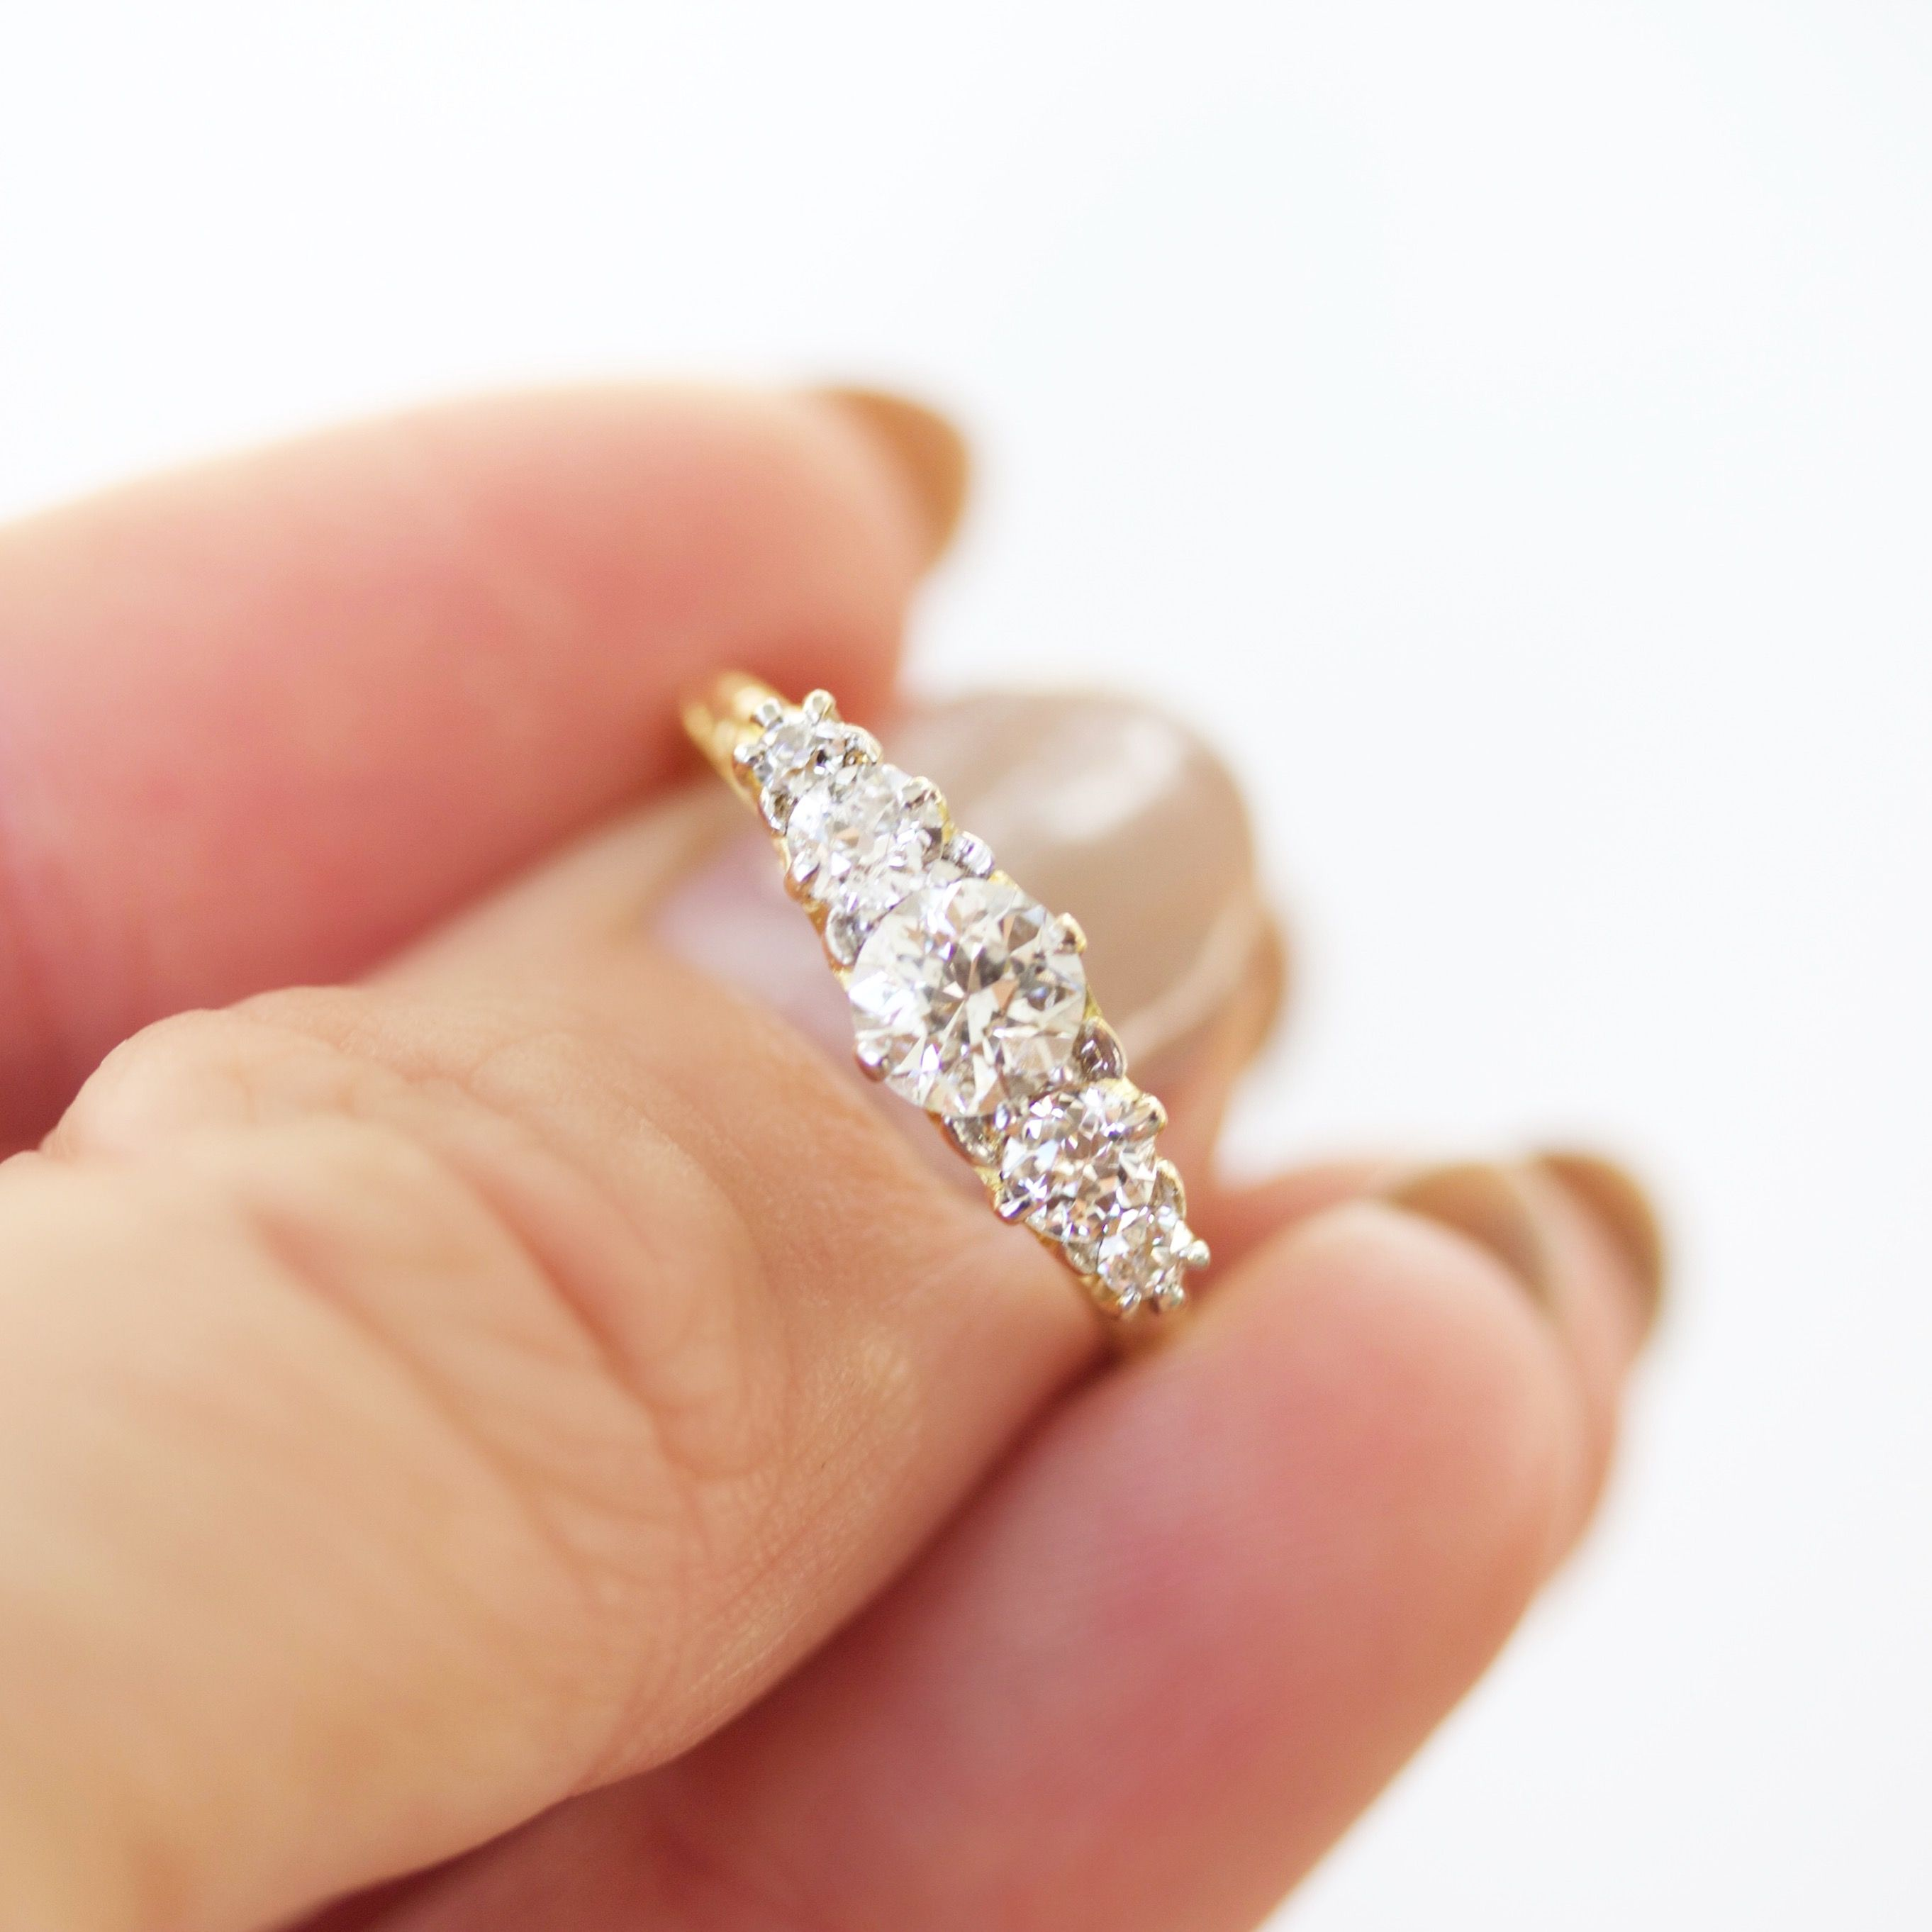 Gorgeous Vintage 5 Stone Diamond Engagement Ring In Yellow Gold! In L O V E  !